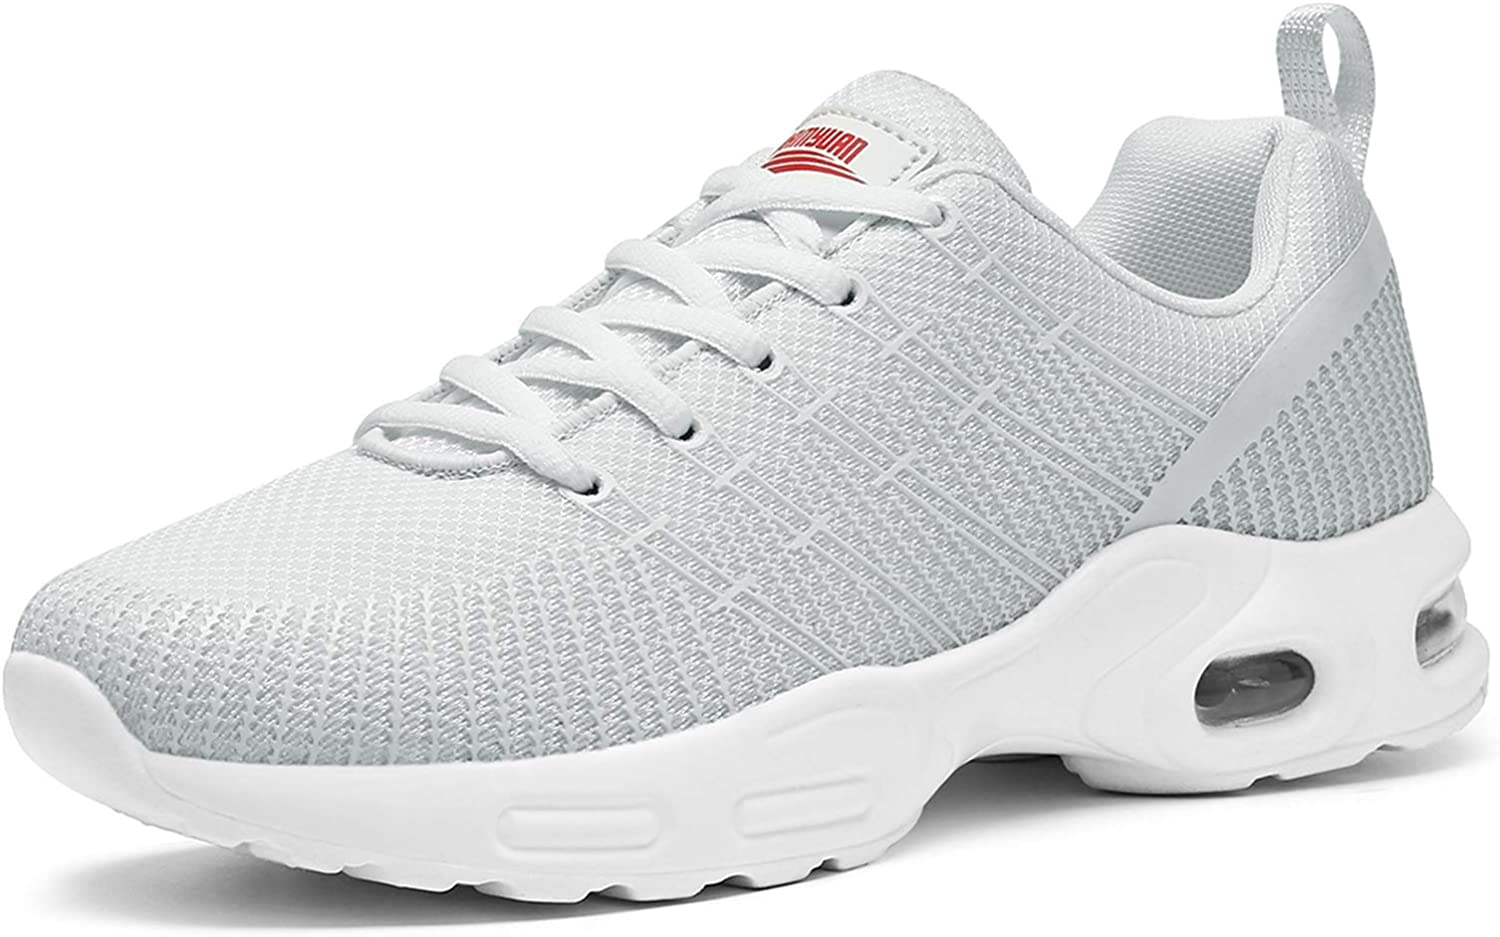 Womens Walking Tennis Shoes Lightweight Gym Sports Athletic Running Sneakers Hot